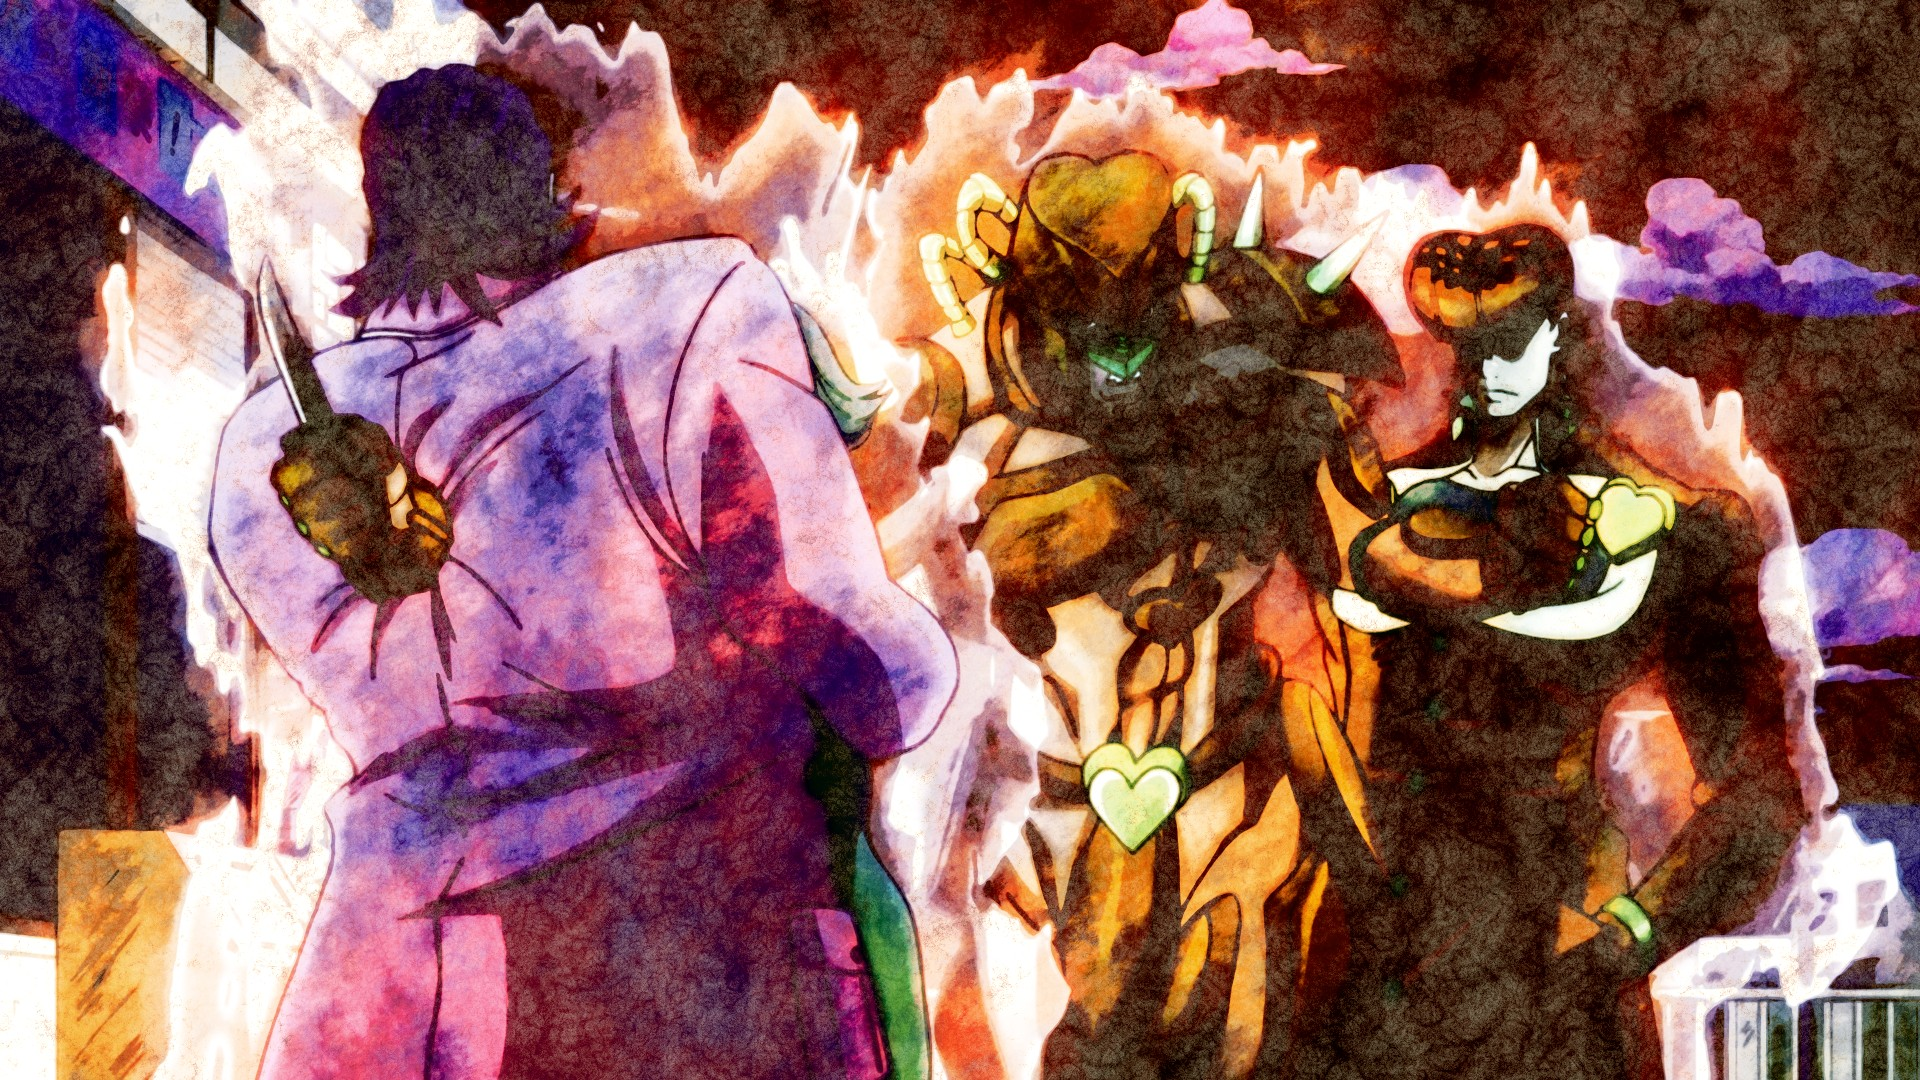 Jojo Bizarre Adventure wallpaper ·① Download free awesome full HD wallpapers for desktop and ...